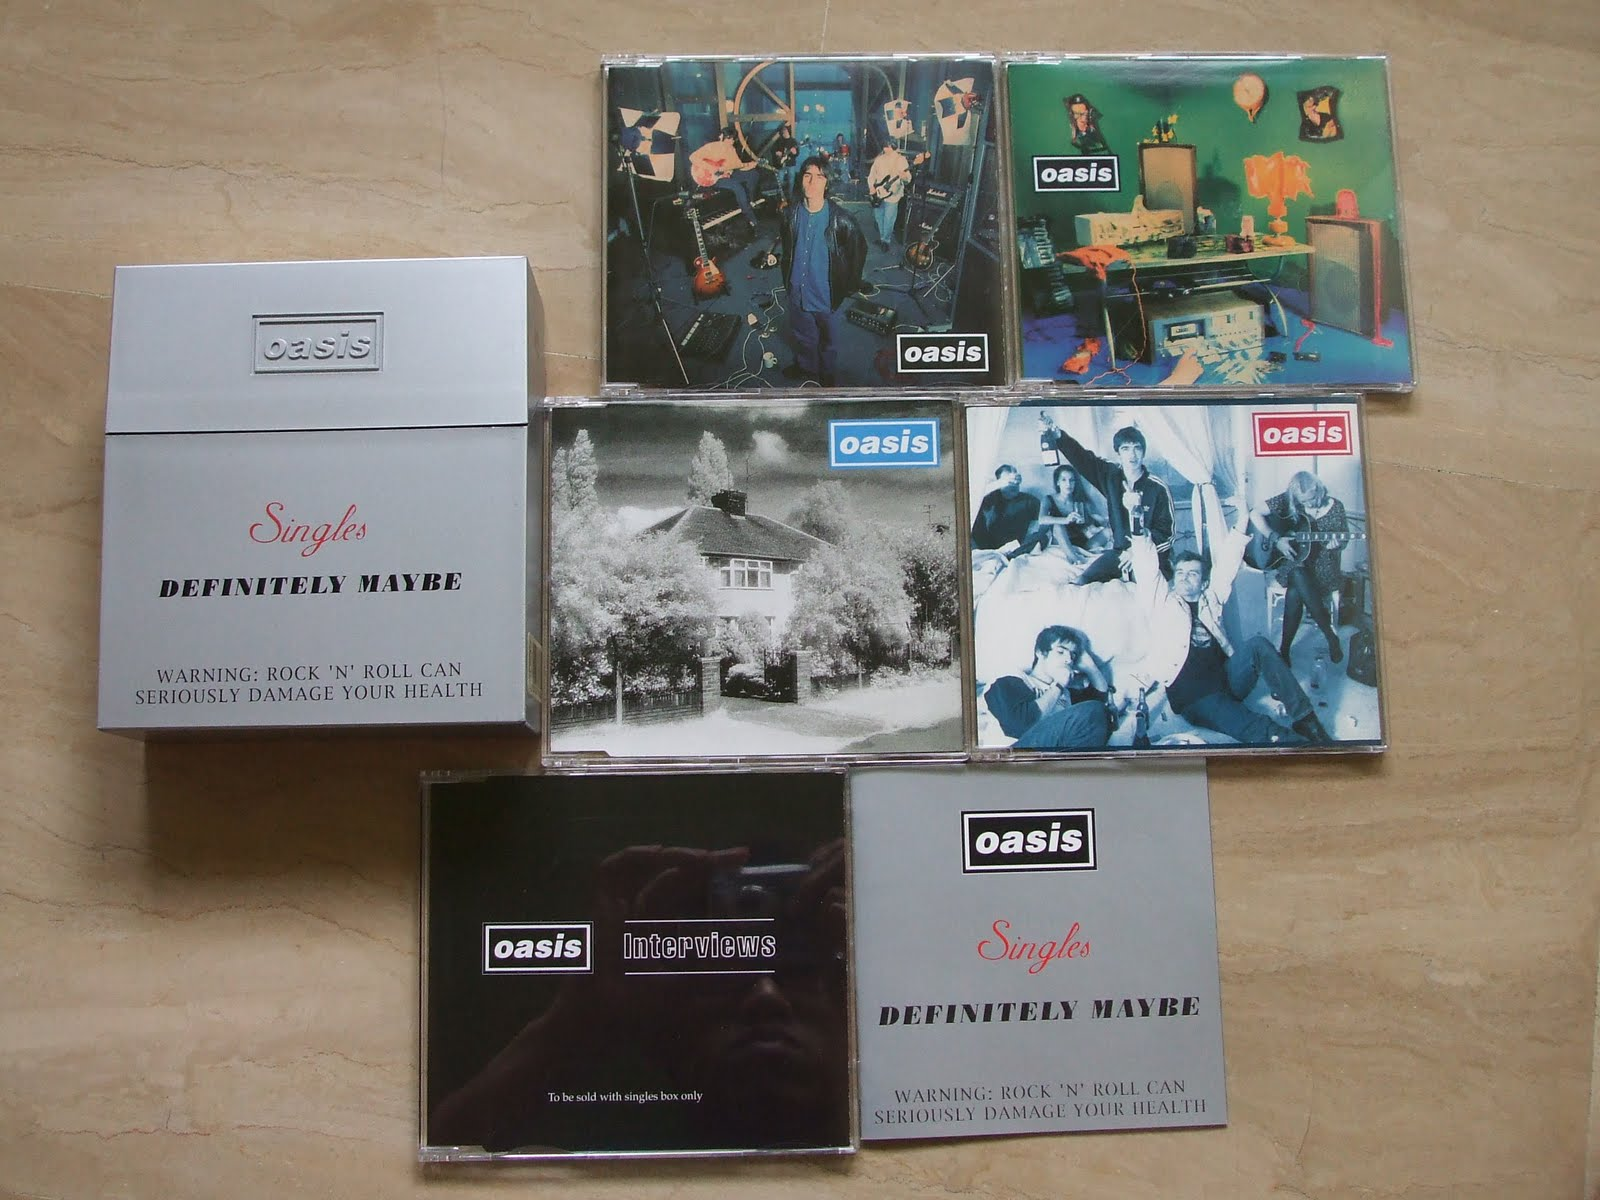 Oasis complete singles box